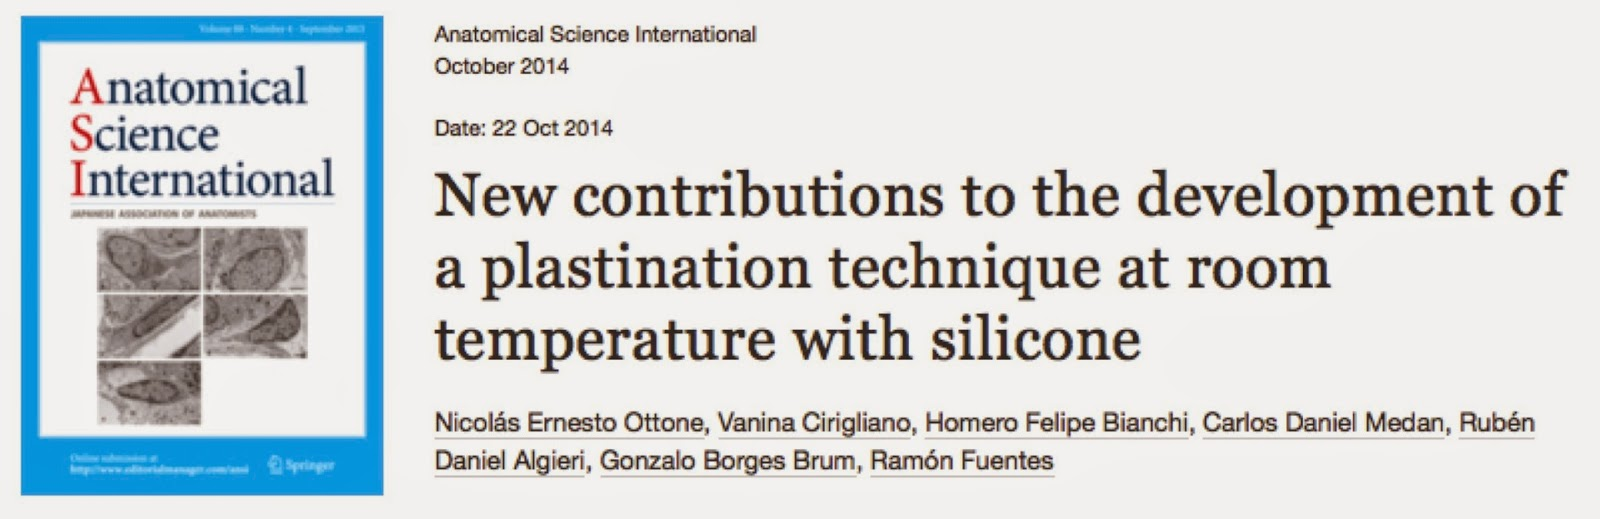 http://link.springer.com/article/10.1007/s12565-014-0258-6